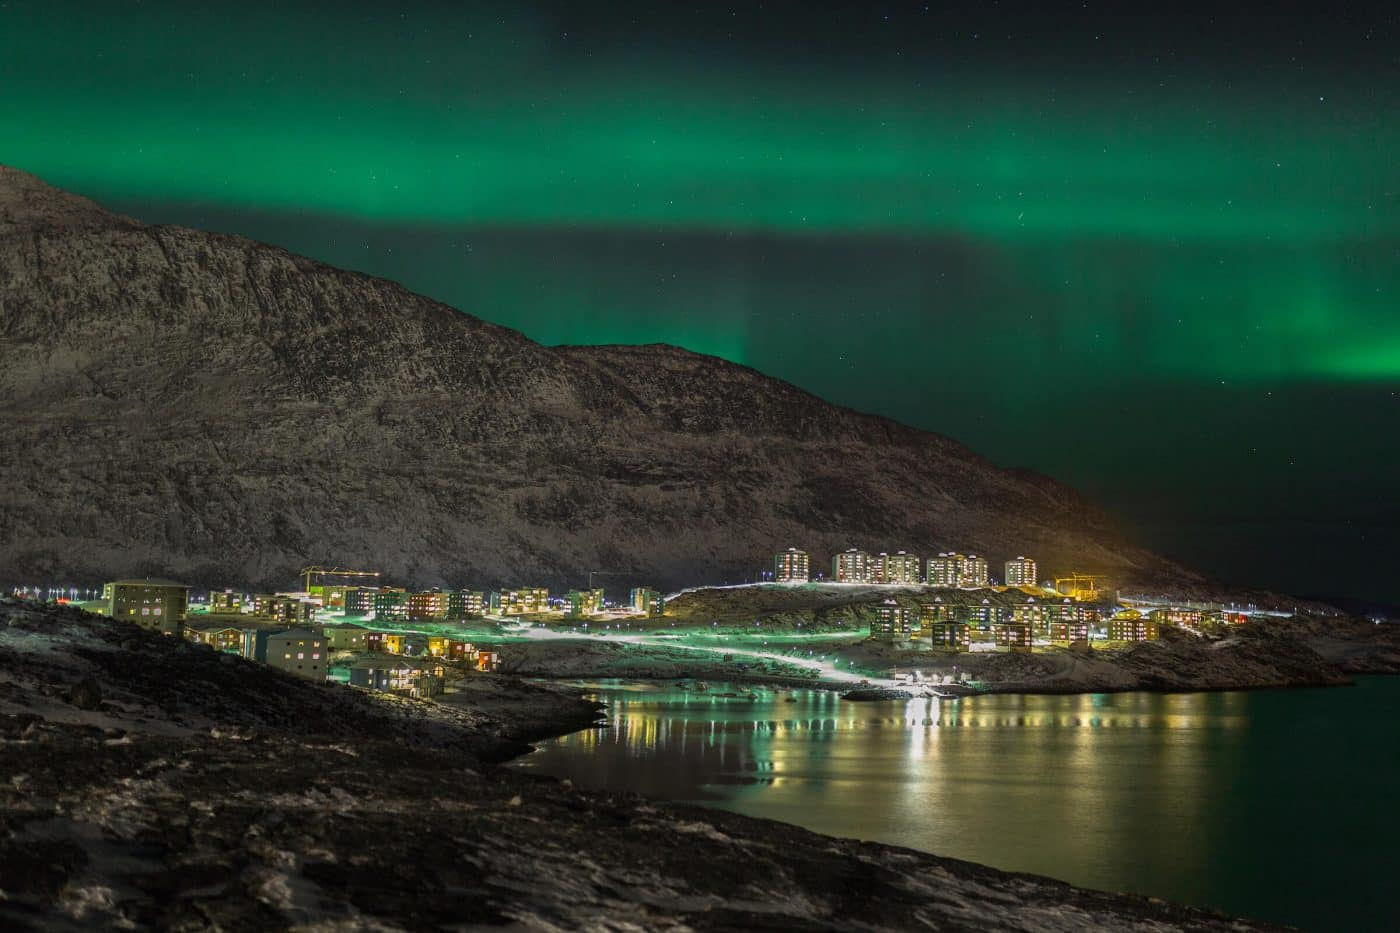 Northern Lights over the city lights of Qinngorput, Nuuk in Greenland. Photo by Rebecca Gustafsson